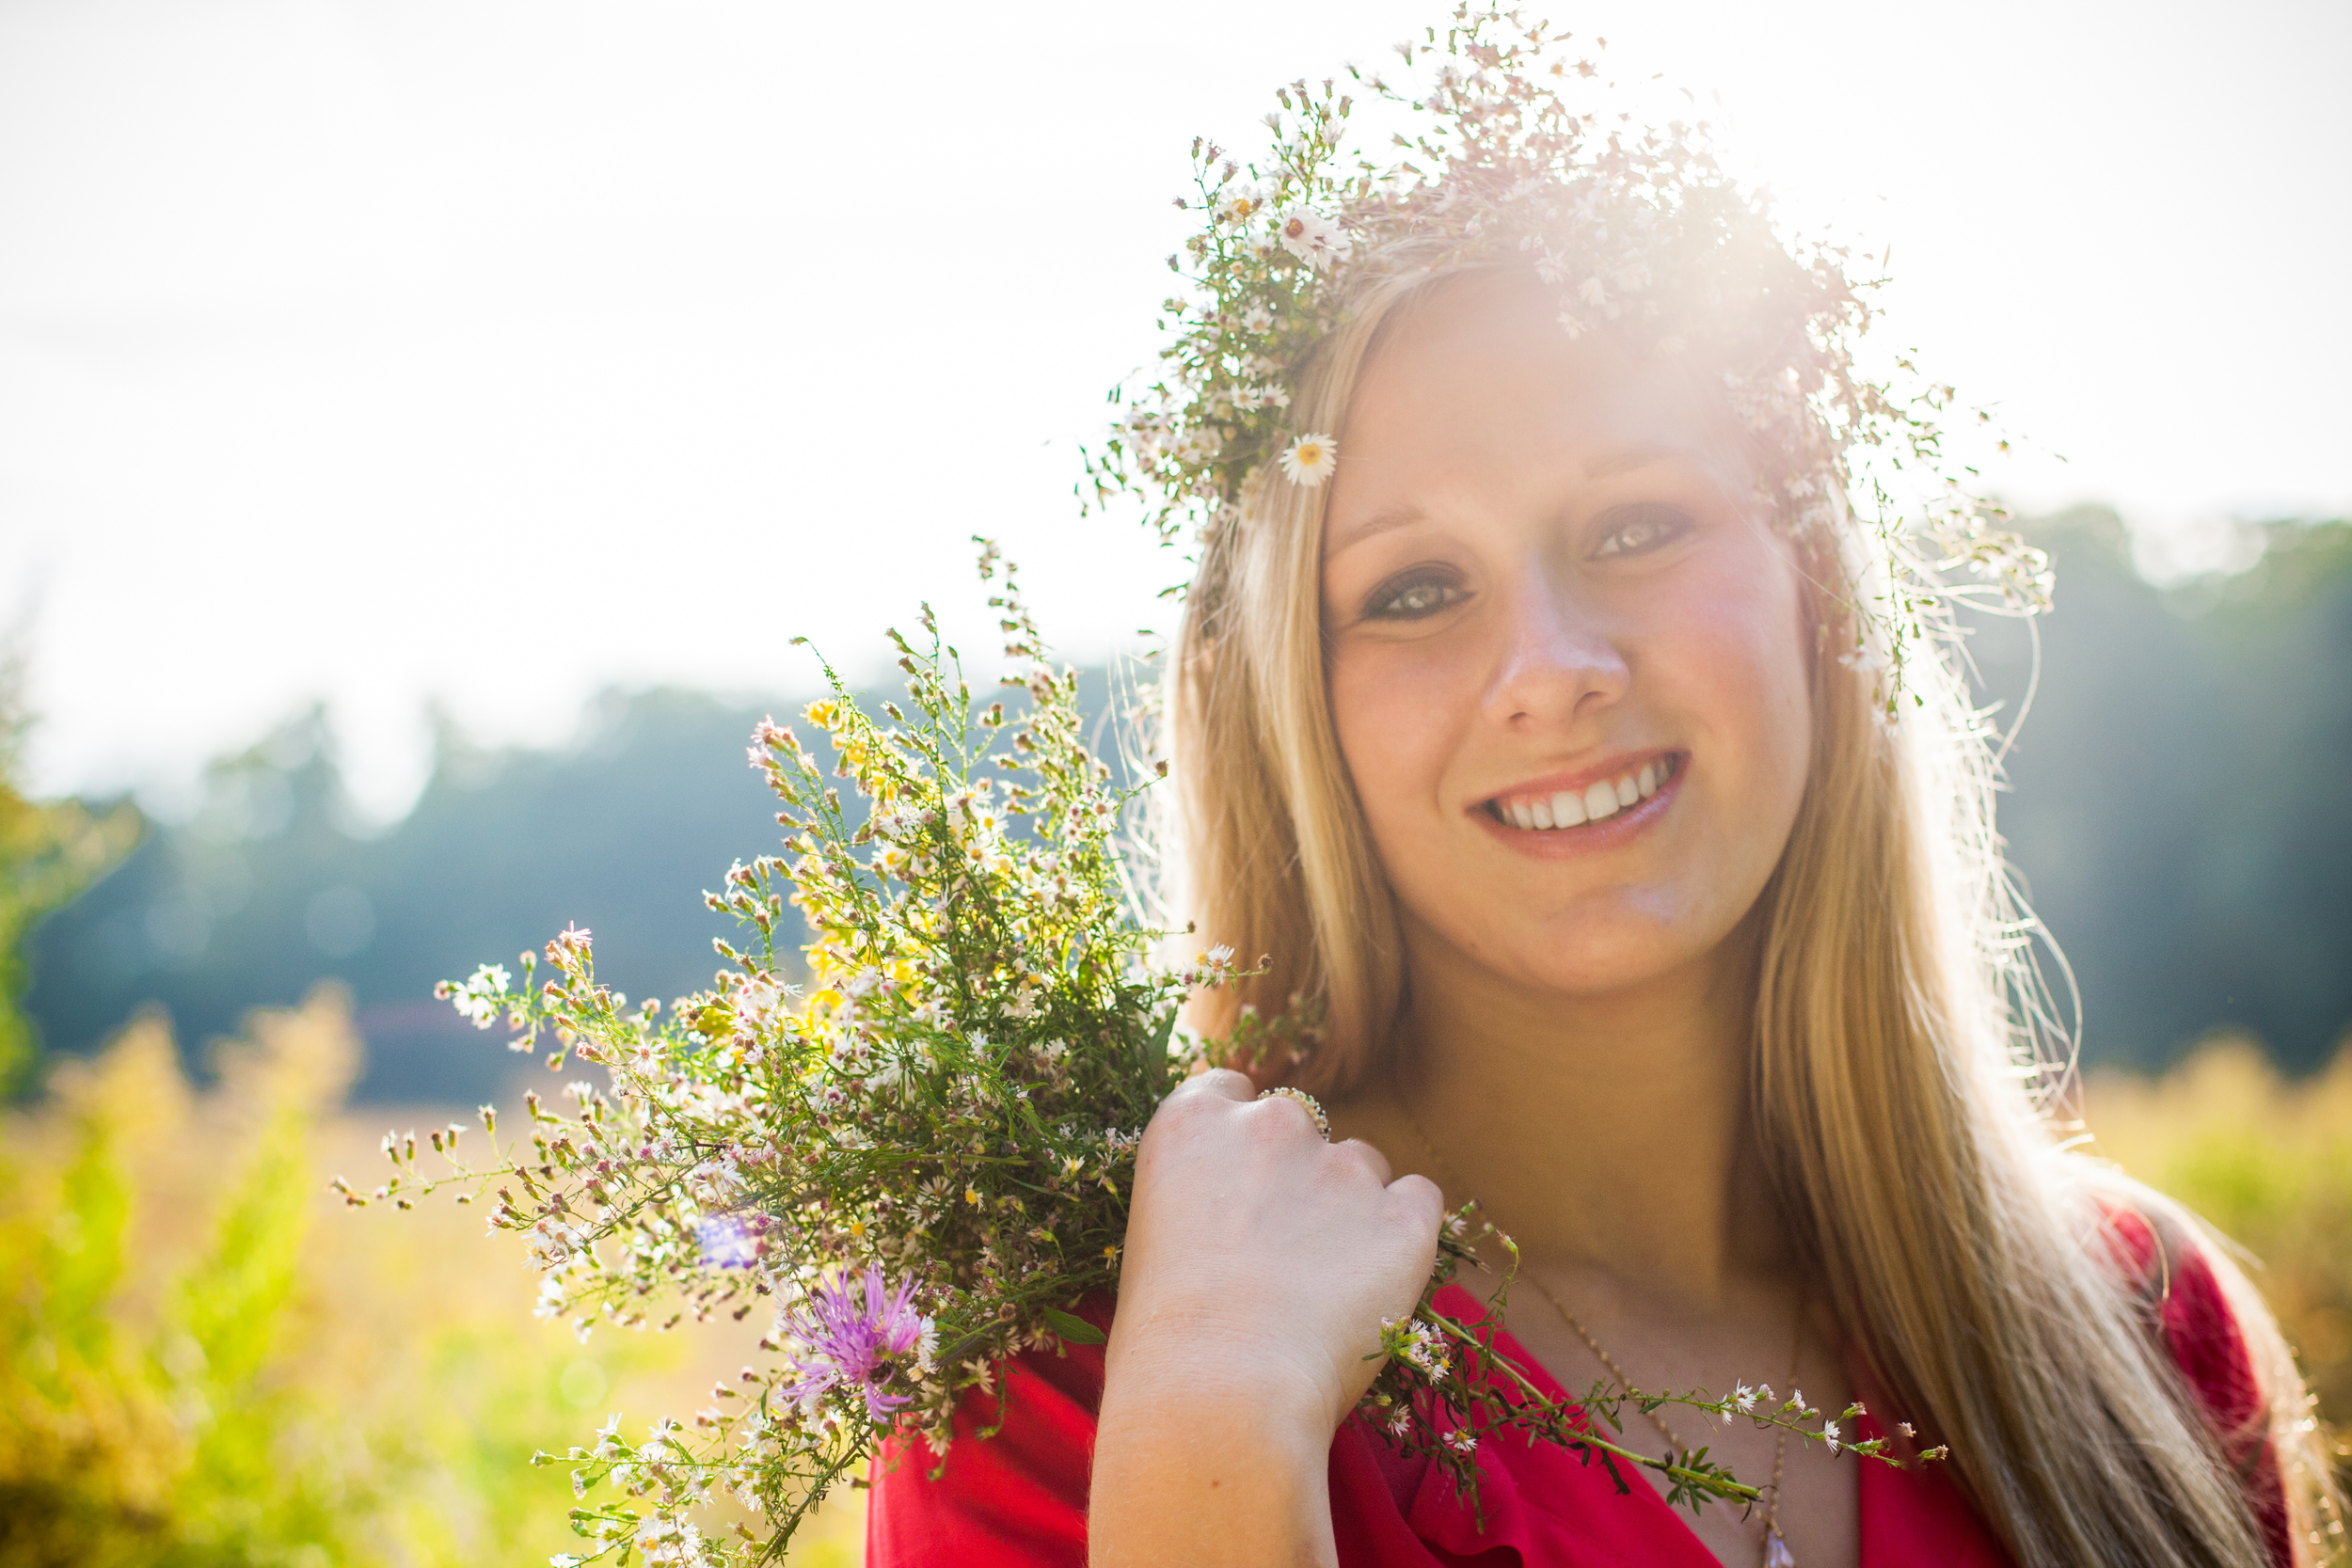 Samantha_Senior_Portraits-41.jpg